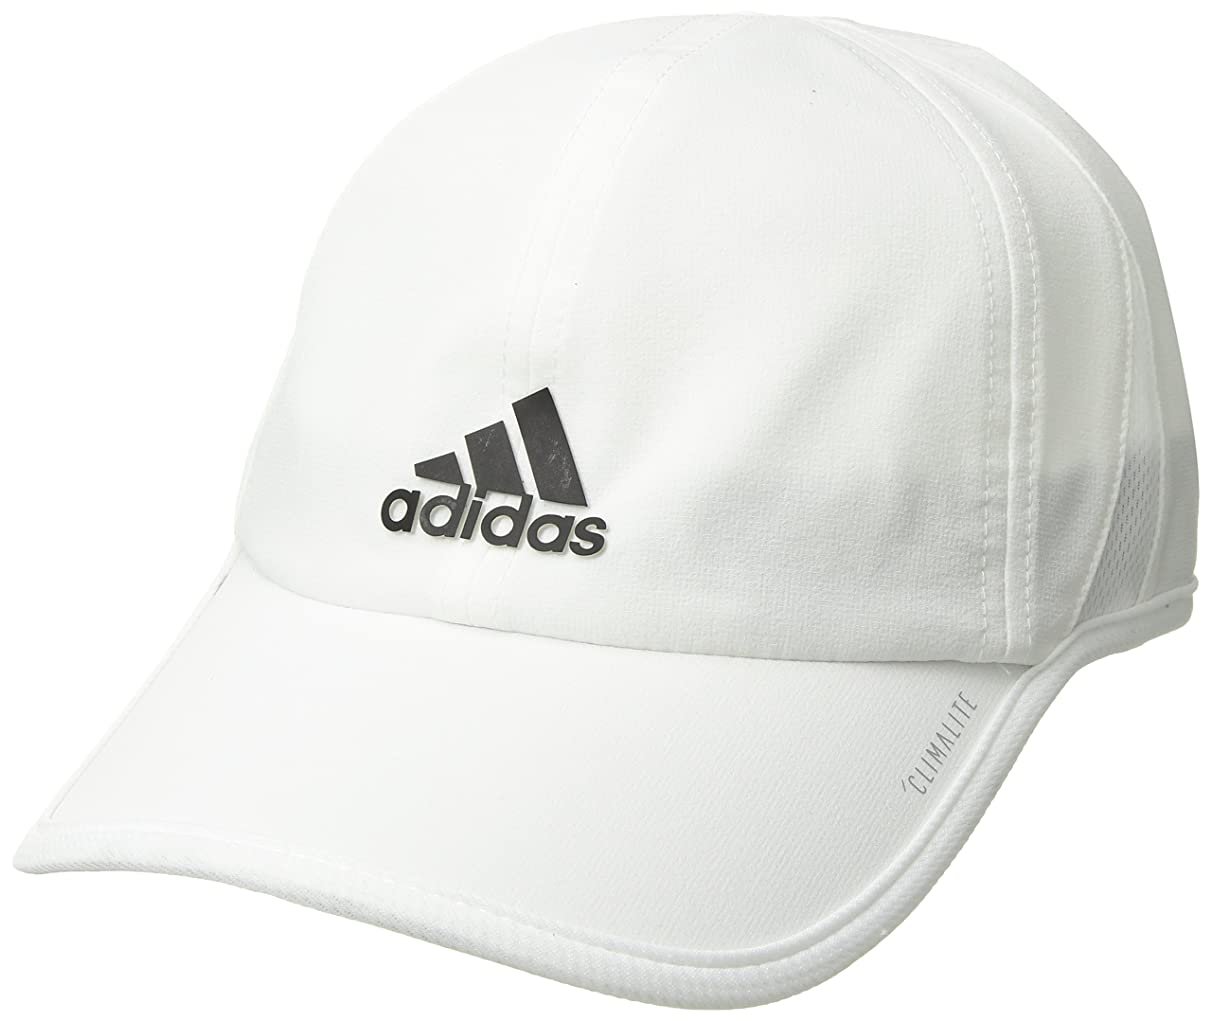 adidas Men's Superlite Relaxed Adjustable Performance Cap